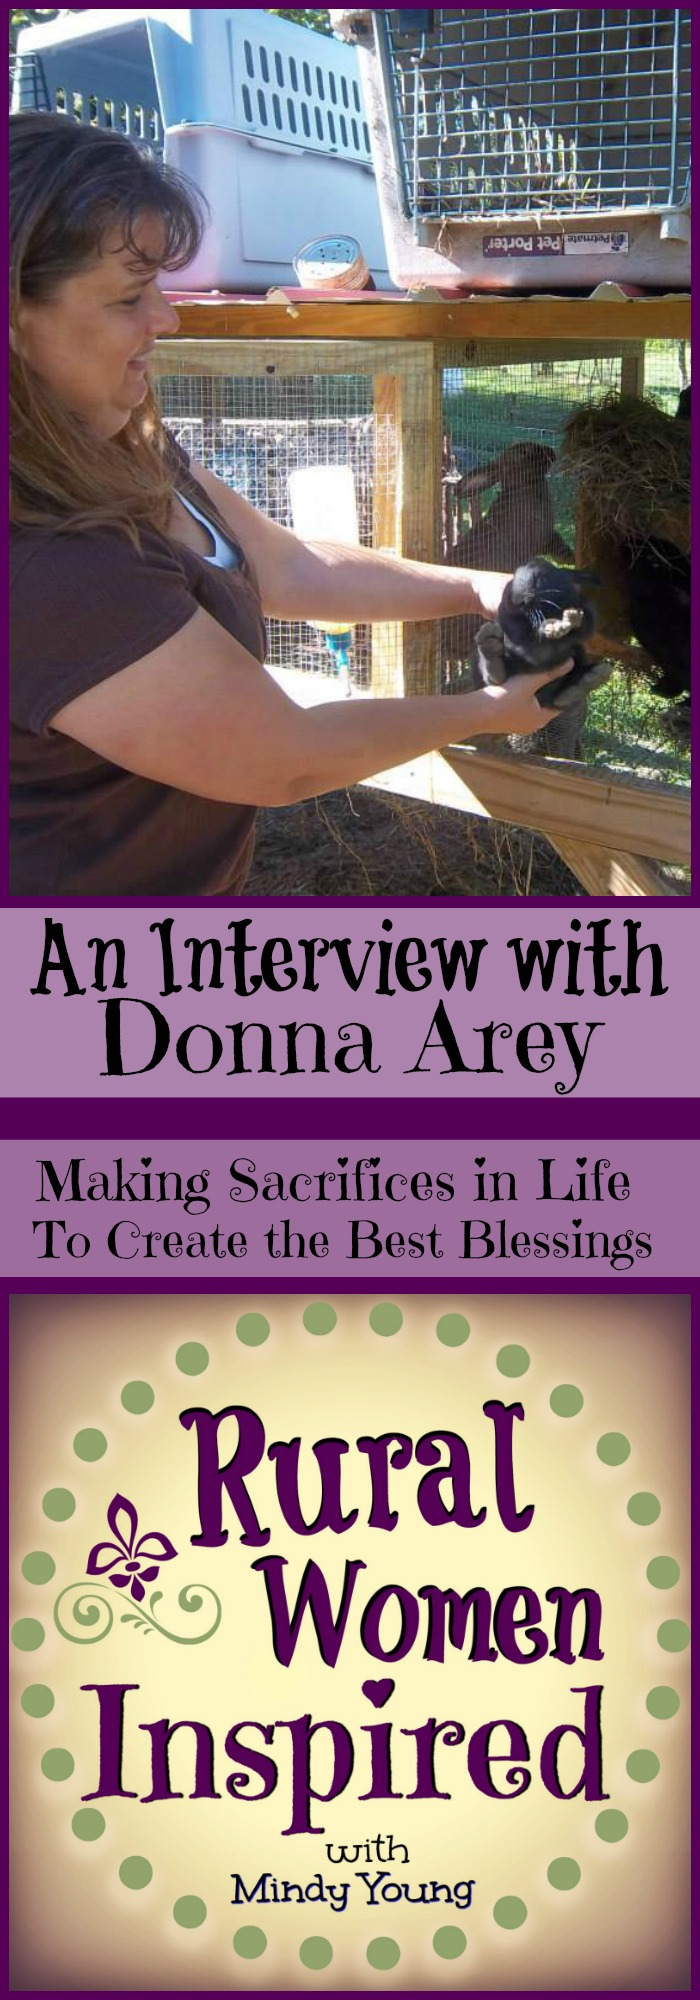 Do you find yourself in the midst of making sacrifices in life to get what you want? Listen to Donna's Story and be inspired to take that next step | Rural Women Inspired | Episode 17